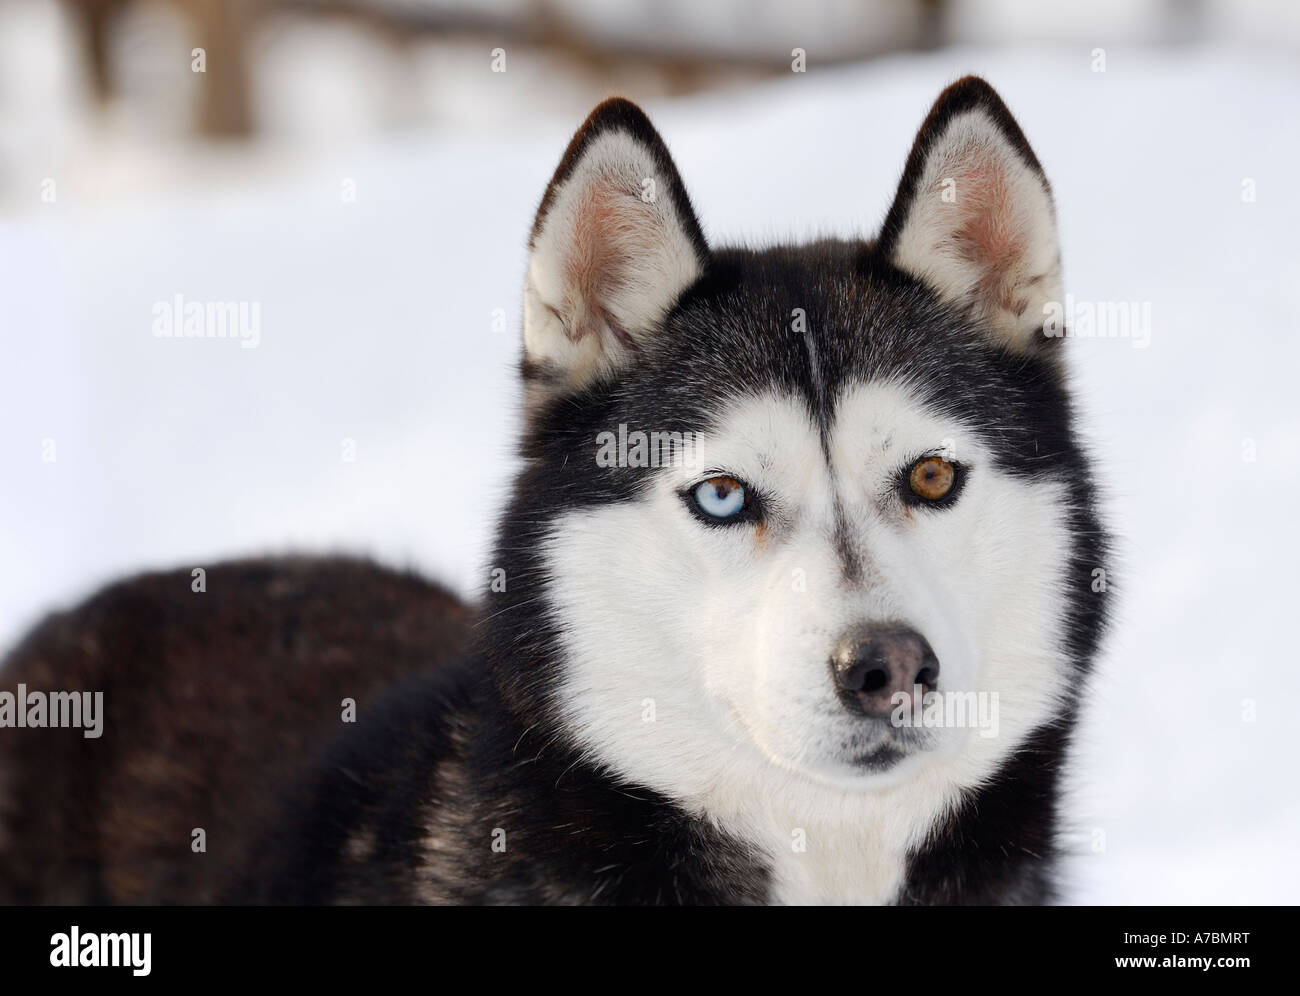 Blue Eyed Dogs High Resolution Stock Photography And Images Alamy